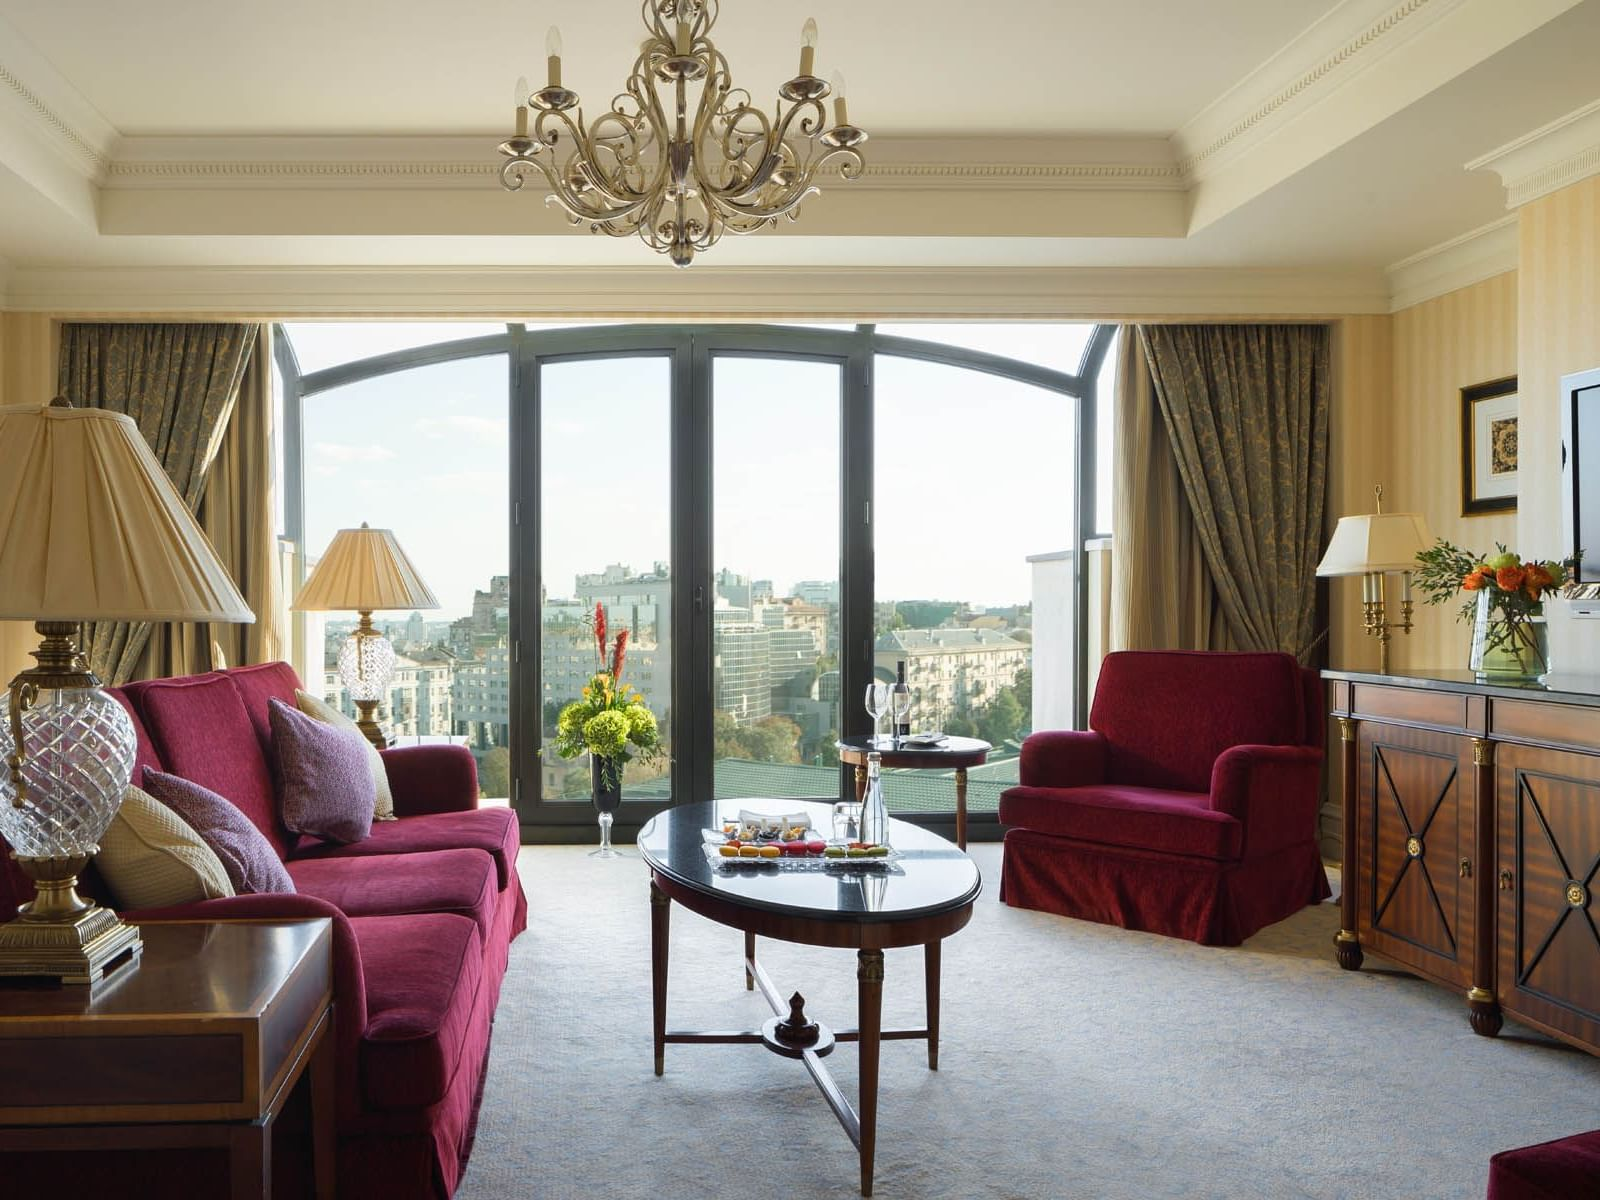 Sunlight living  Governor Suite  at Intercontinental Kyiv hotel